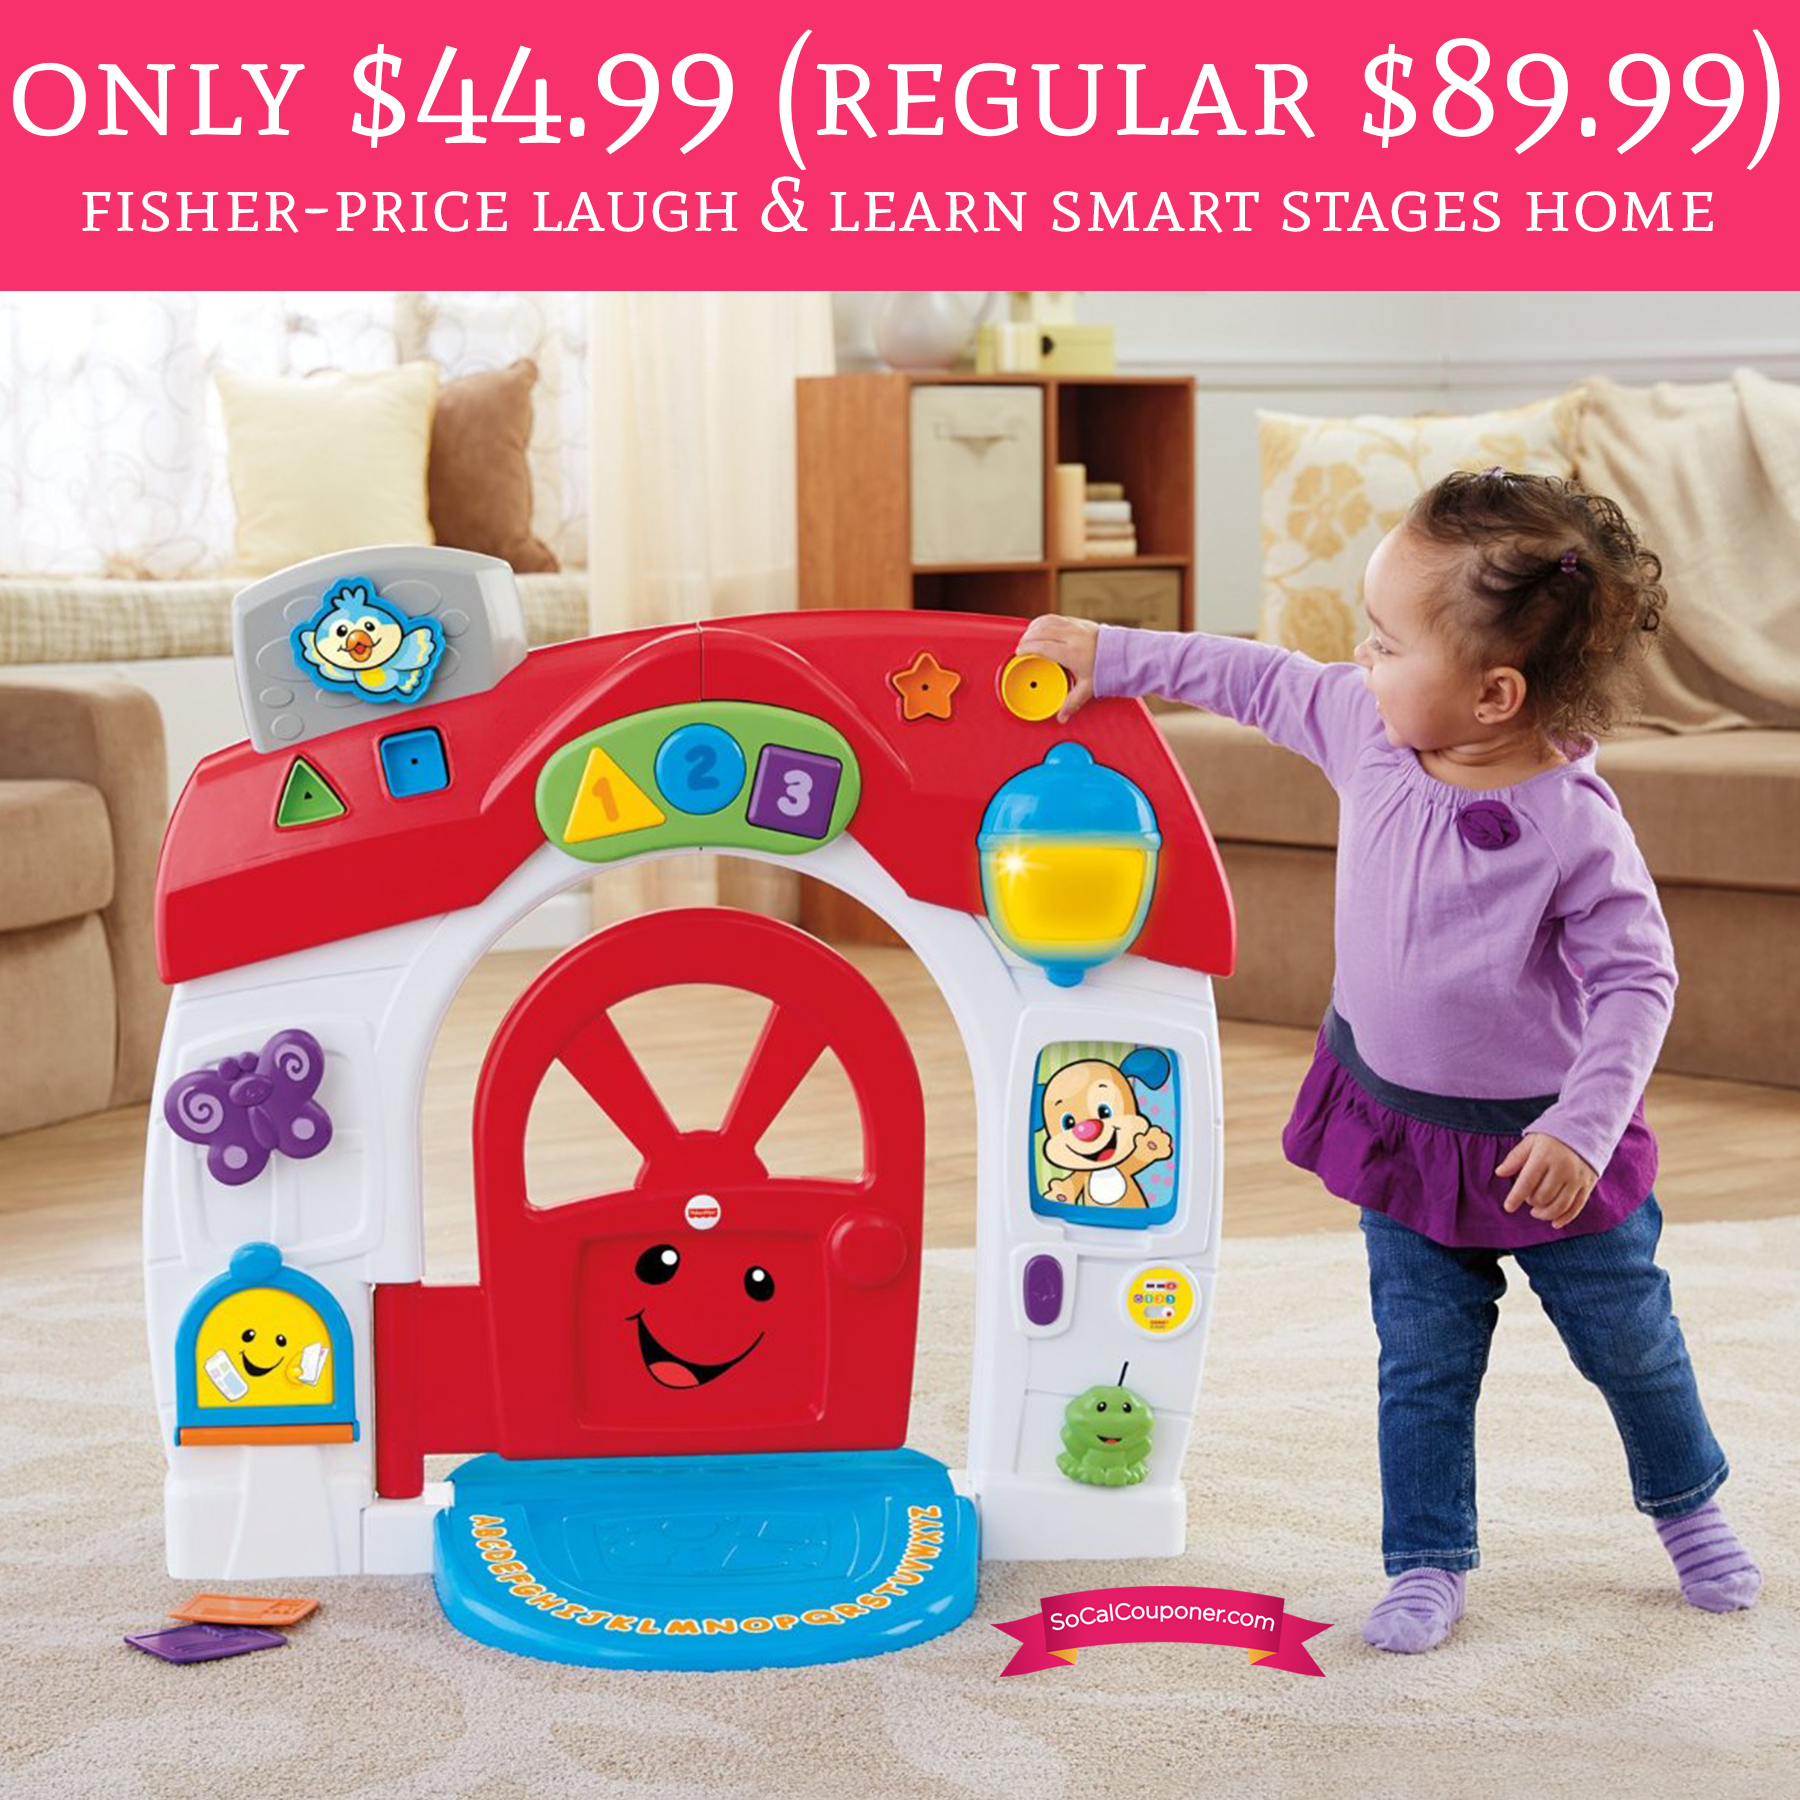 Only $44.99 (Regular $89.99) Fisher-Price Laugh & Learn Smart Stages Home Play Set - Deal Hunting Babe